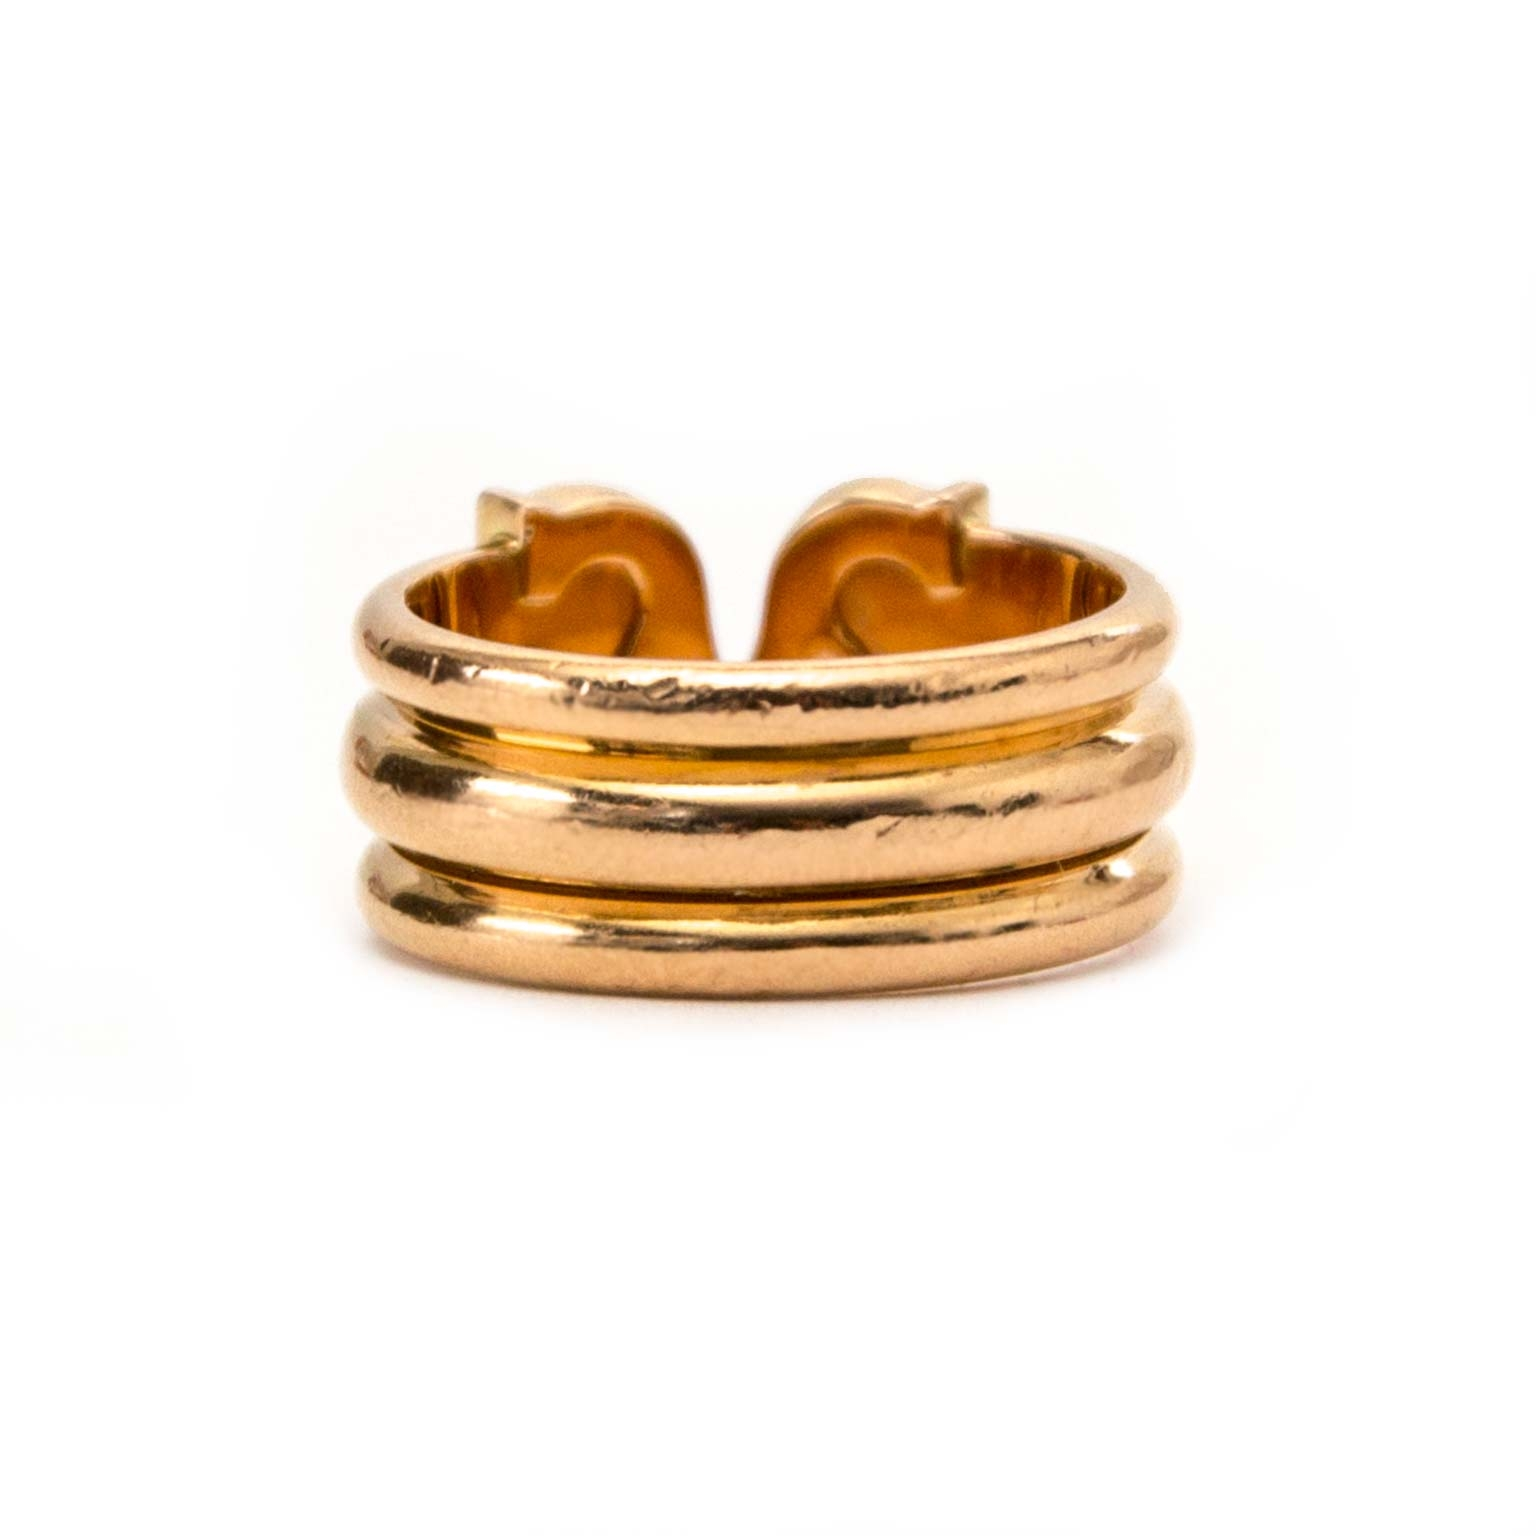 buy secondhand authentic Cartier Limited Edition Ressort CC Rosé Gold Diamond Ring for less at Labellov, vintage webshop